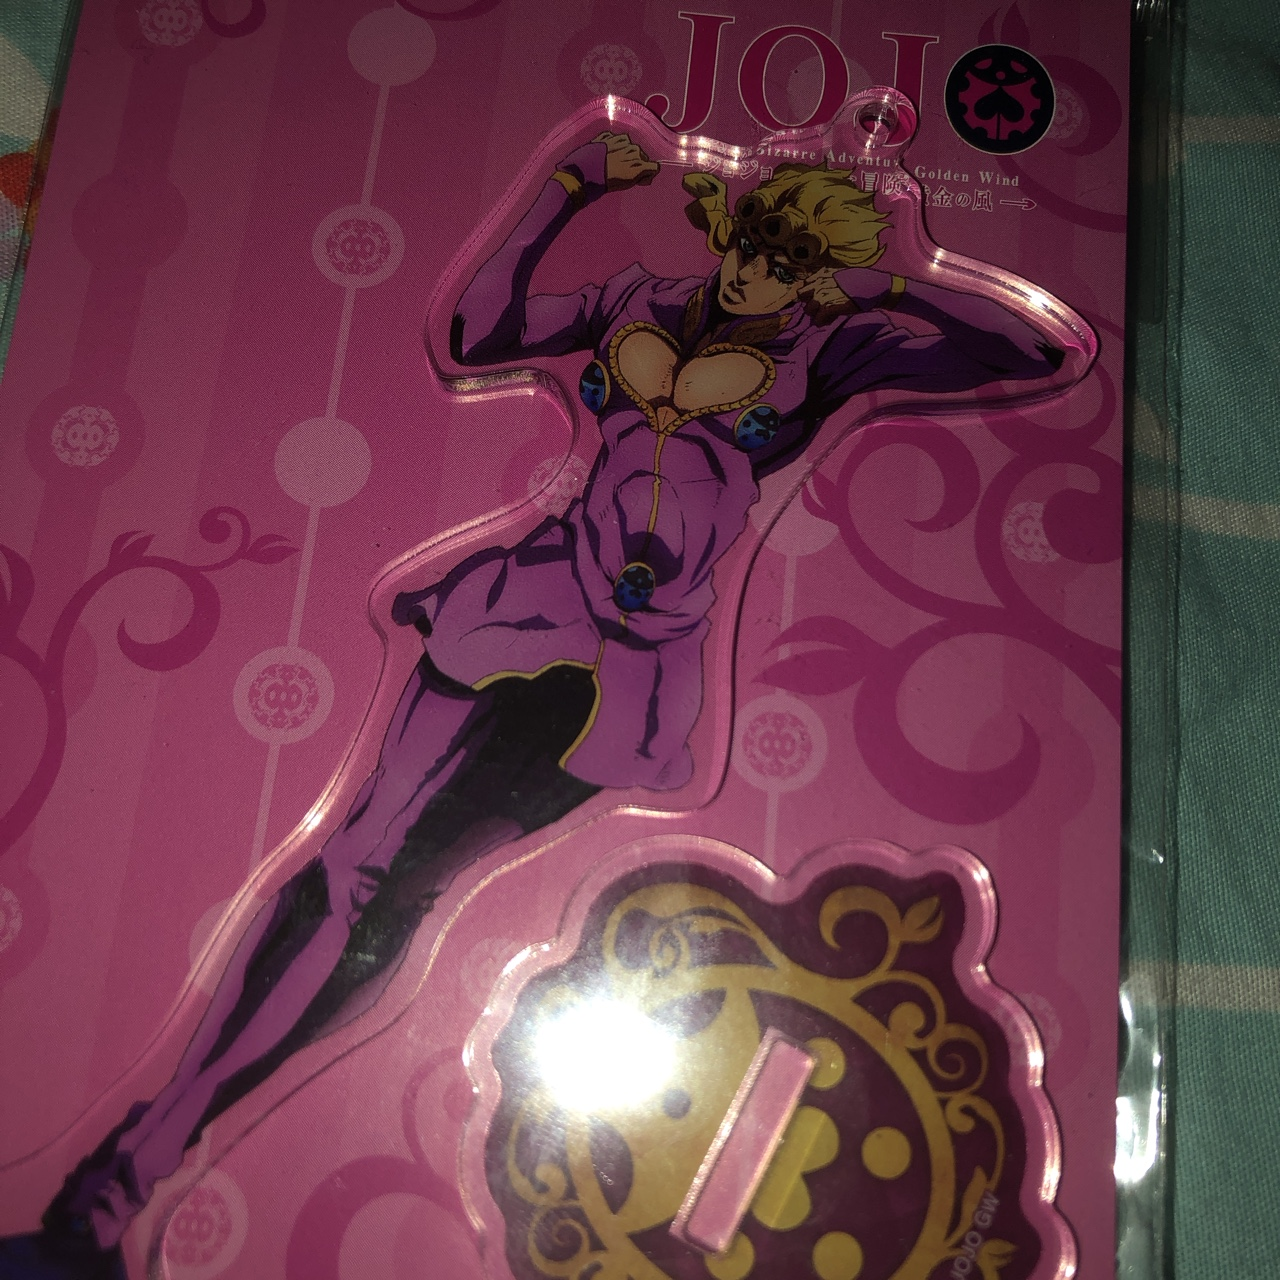 18 50 Giorno stand plus 4 50 shipping DM ME BEFORE